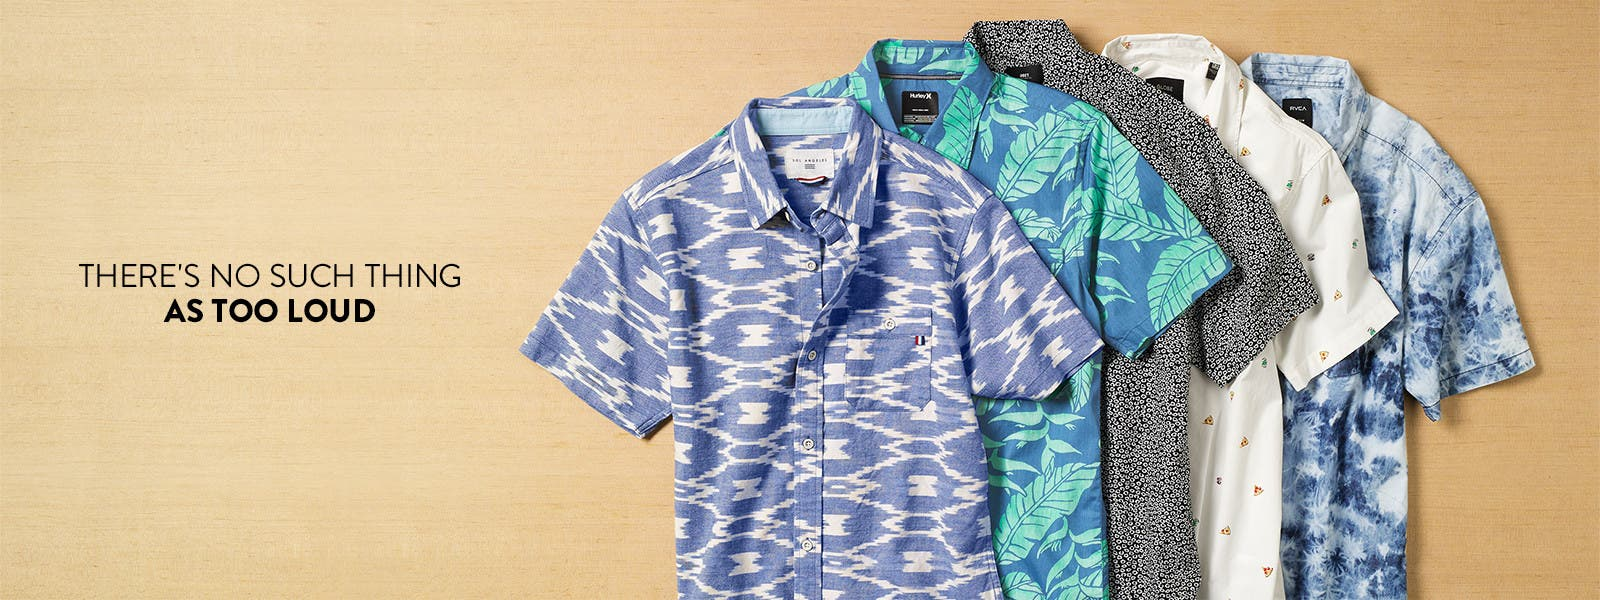 There's no such thing as too loud: short-sleeve printed shirts.